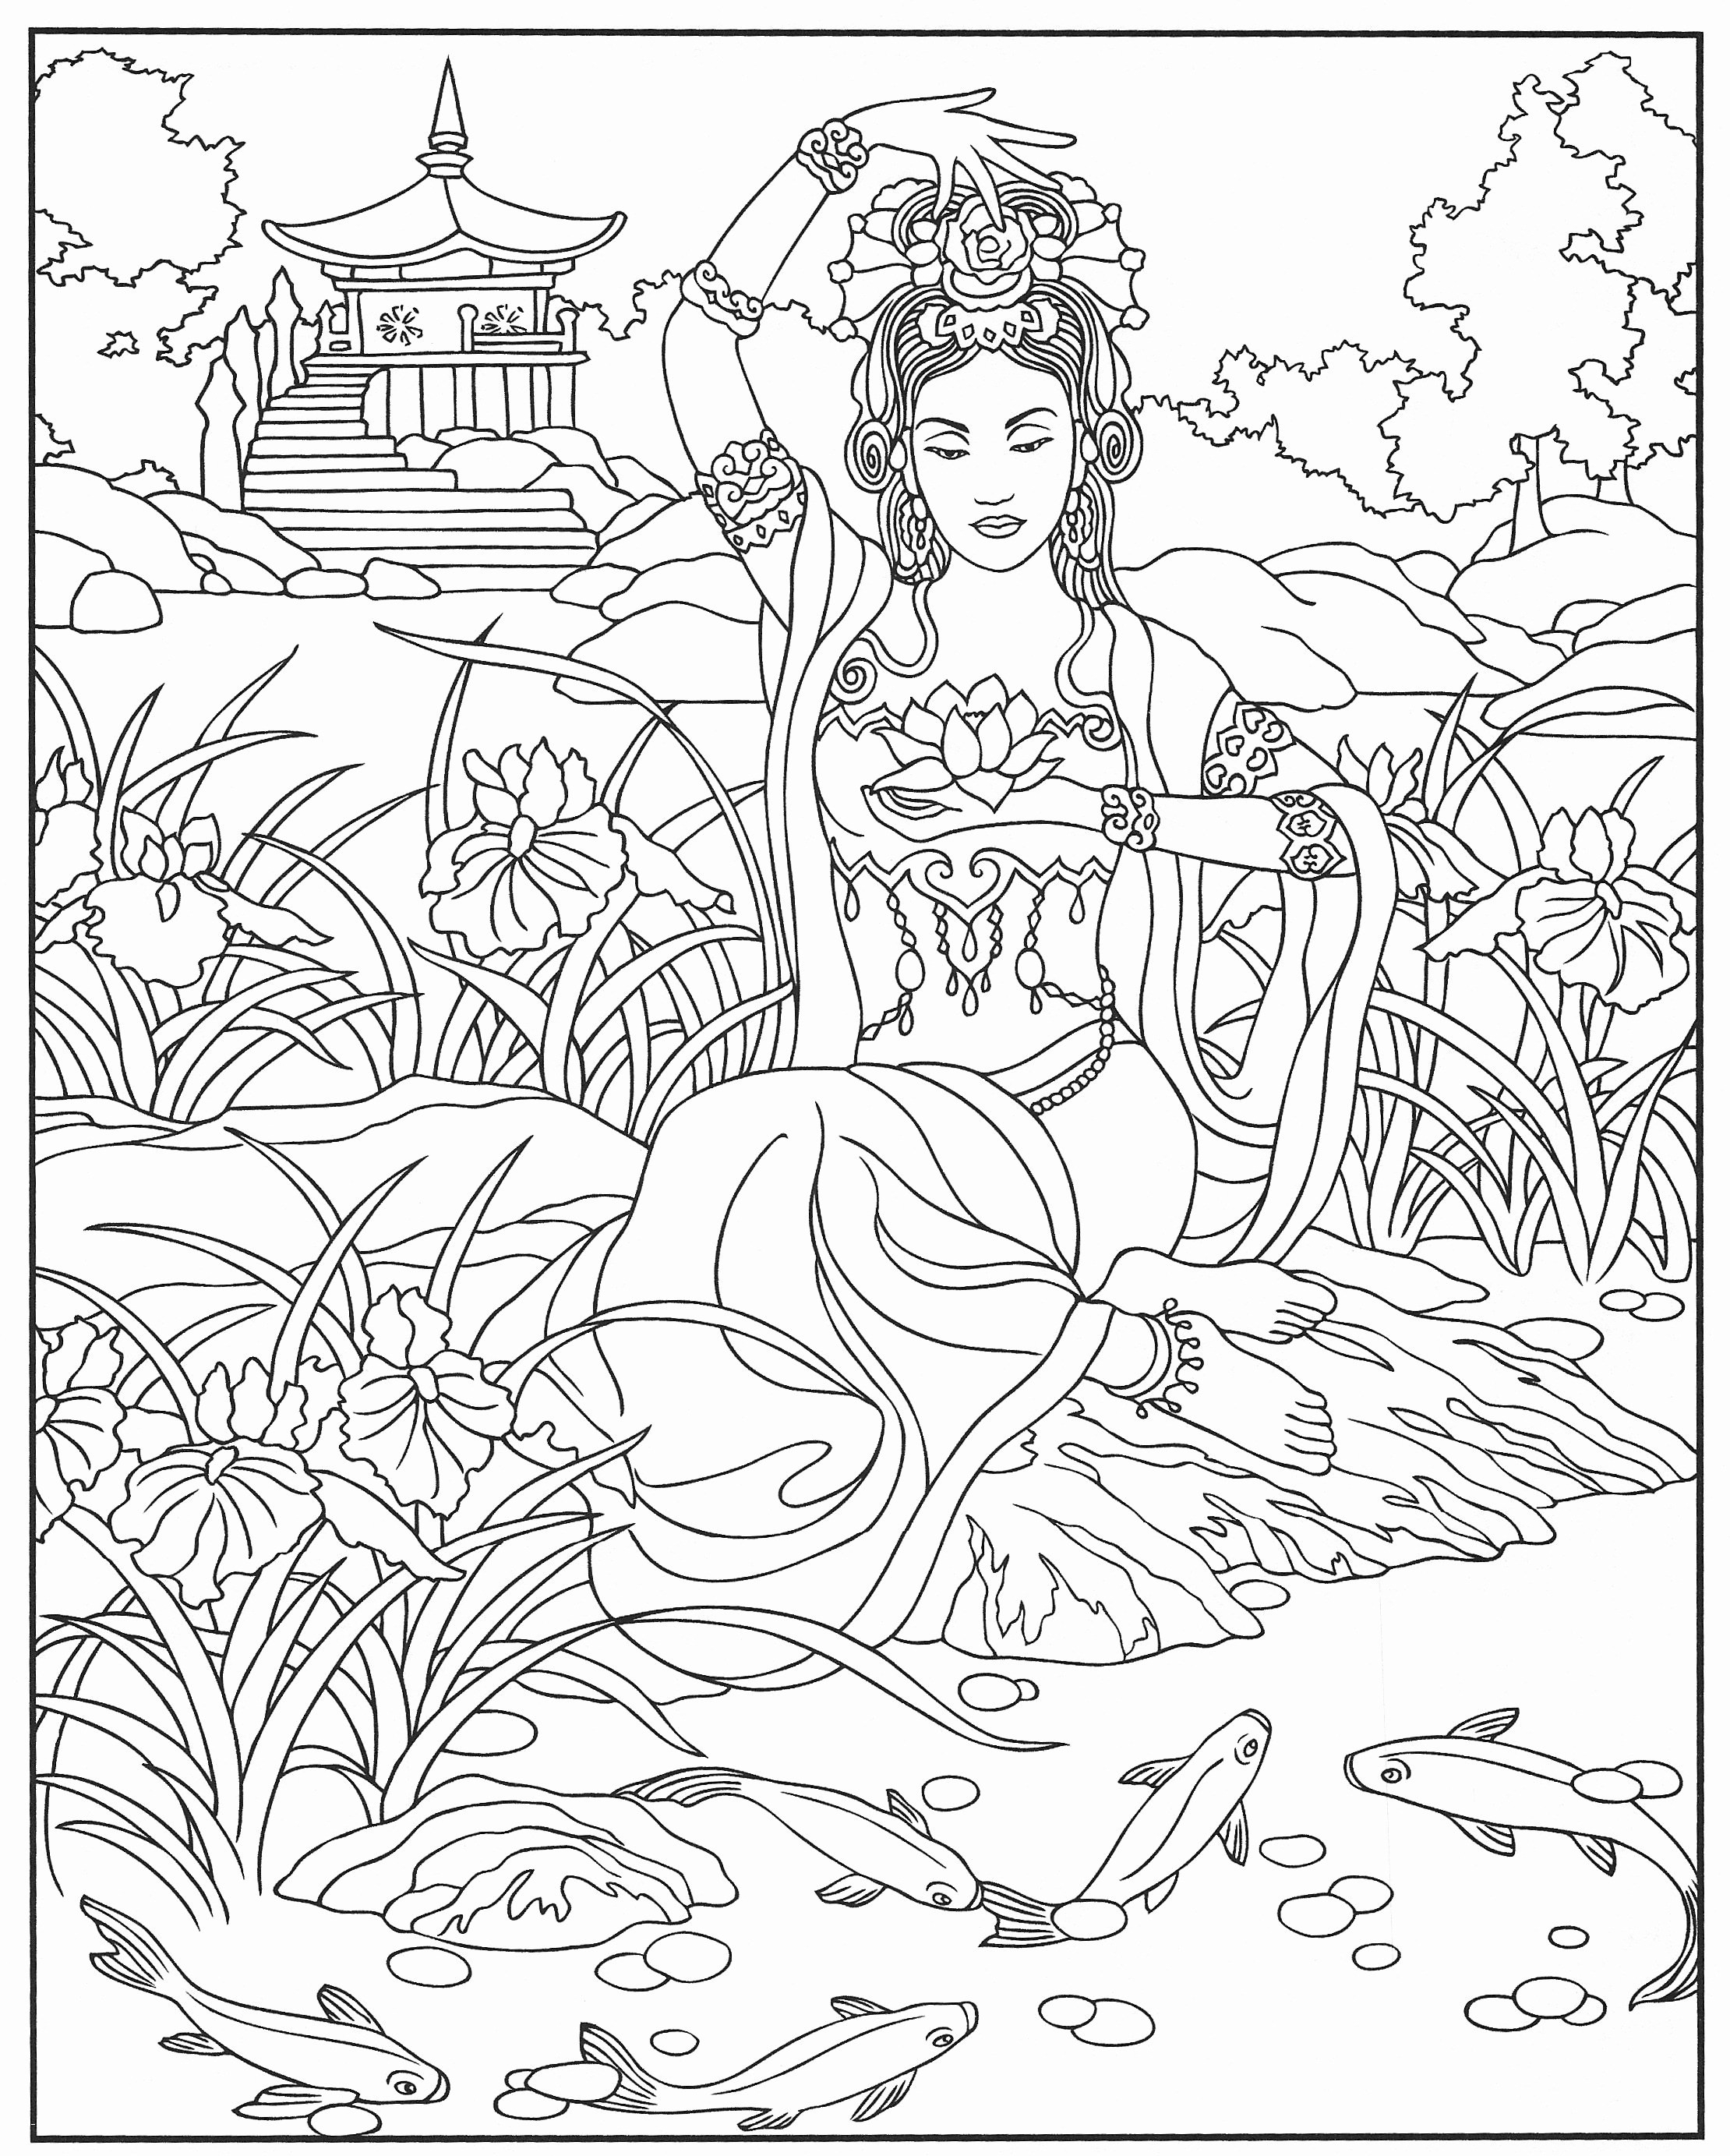 Texas Coloring Pages to Print  Download 15t - Save it to your computer